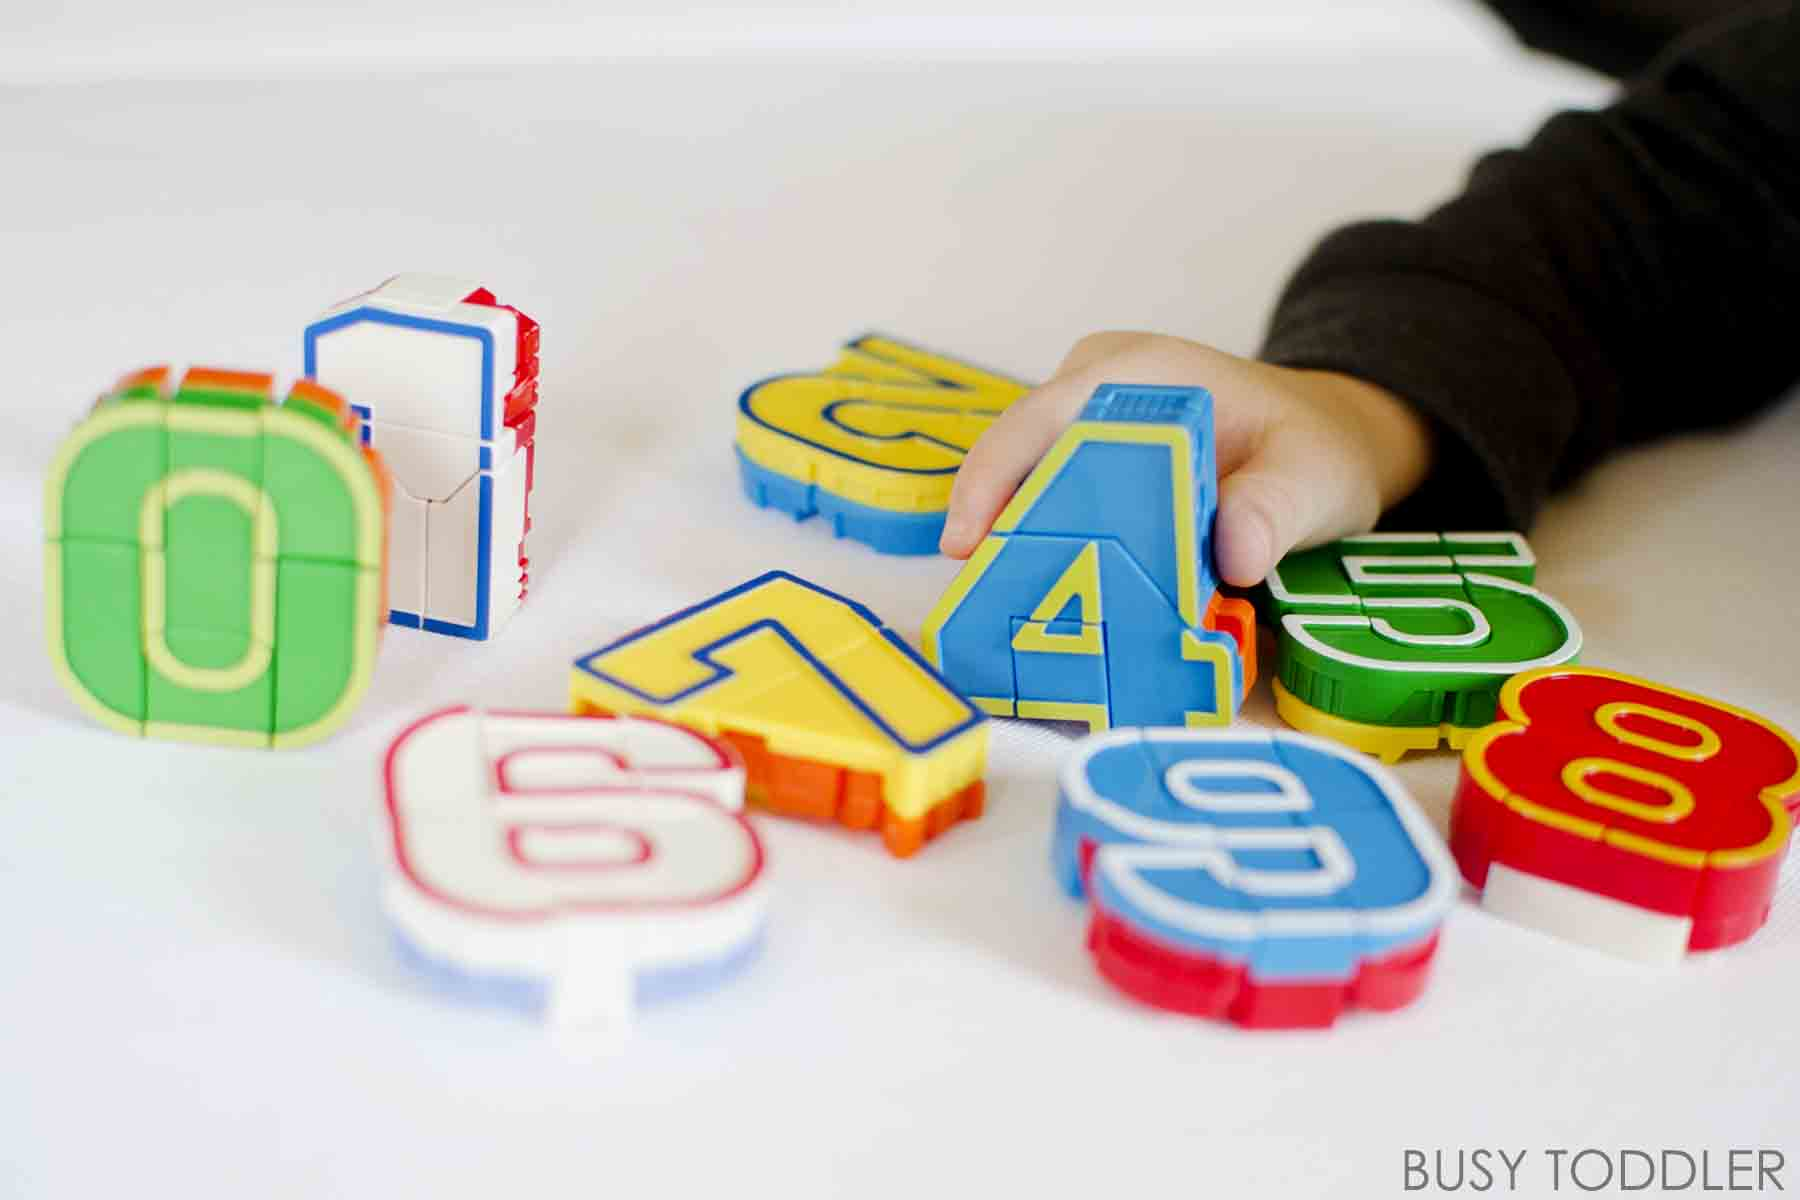 Playing with Numbers Toys that Teach Busy Toddler